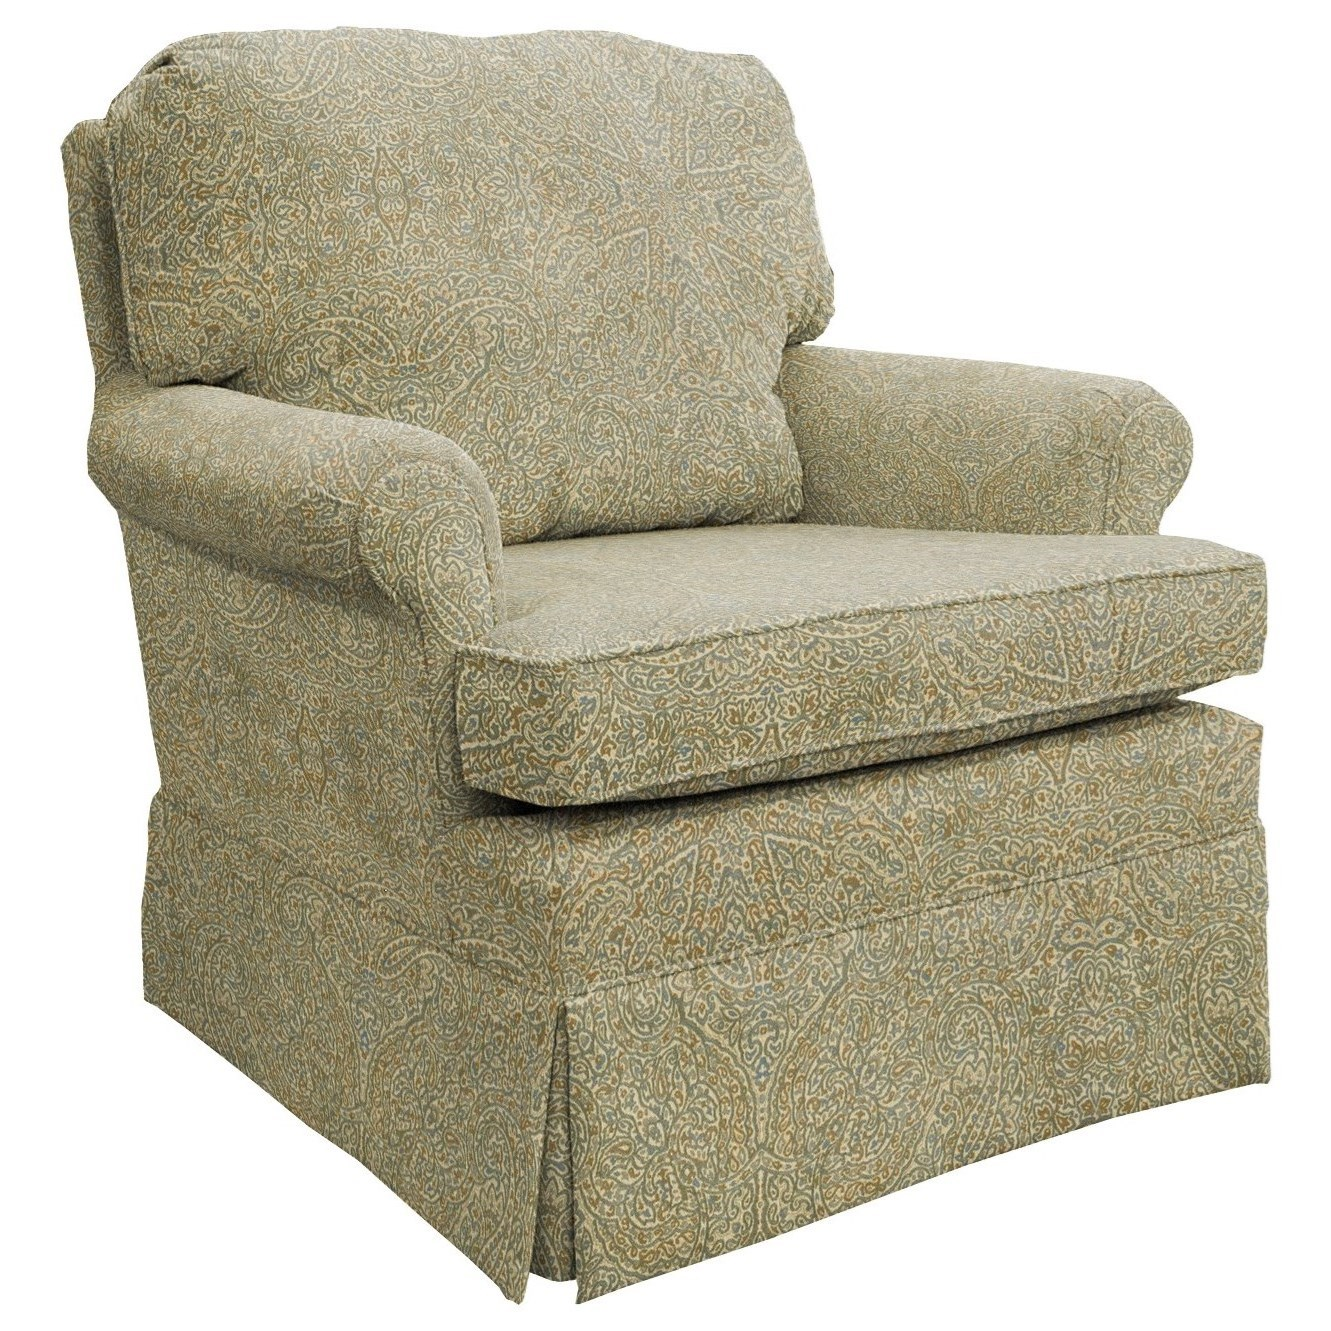 Best Home Furnishings Patoka Club Chair - Item Number: 2610-34672